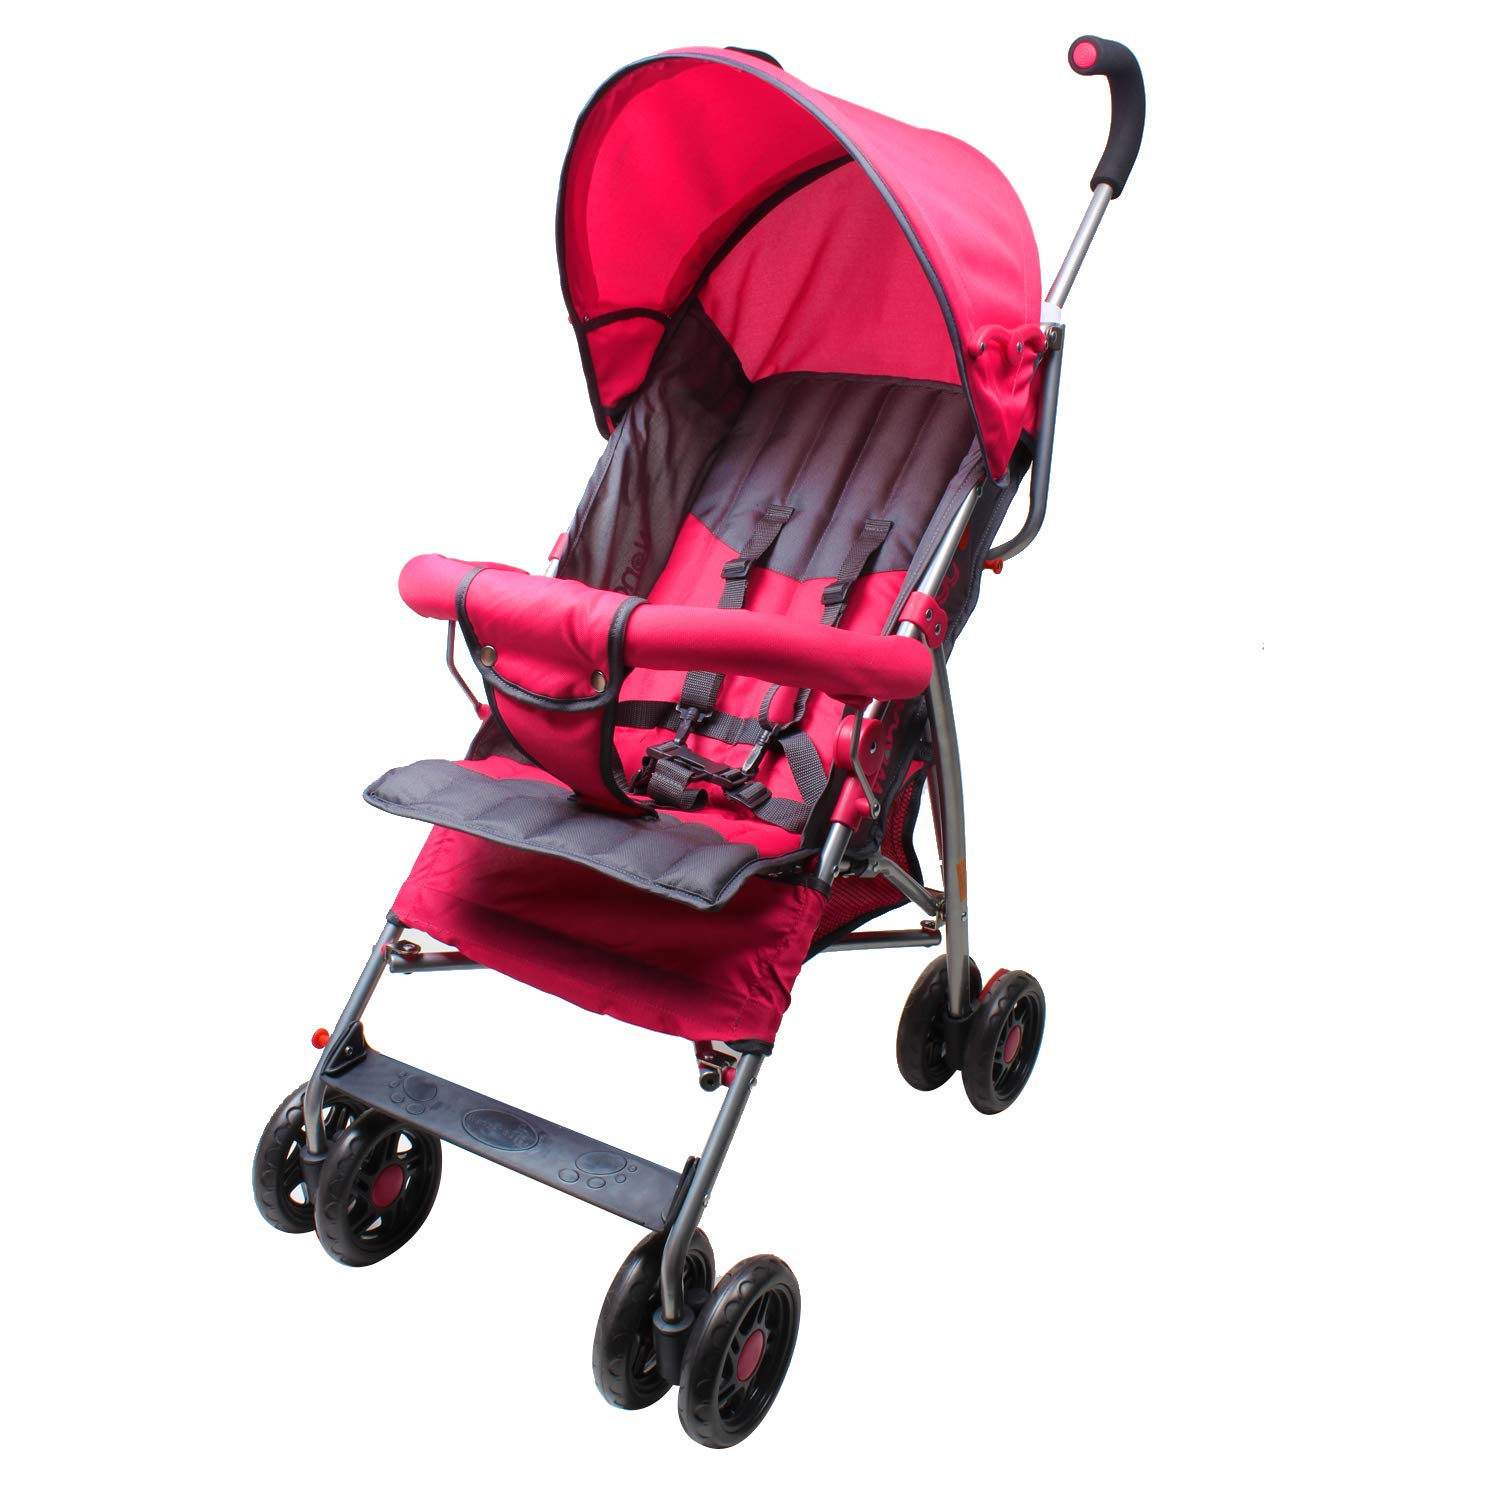 Wonder buggy Lightweight Stroller, Convenience Umbrella Baby Stroller with Front Bar Bumper, Rounded Hood and Basket, Two Position Foldable Infant Stroller Pushchair (Pink)